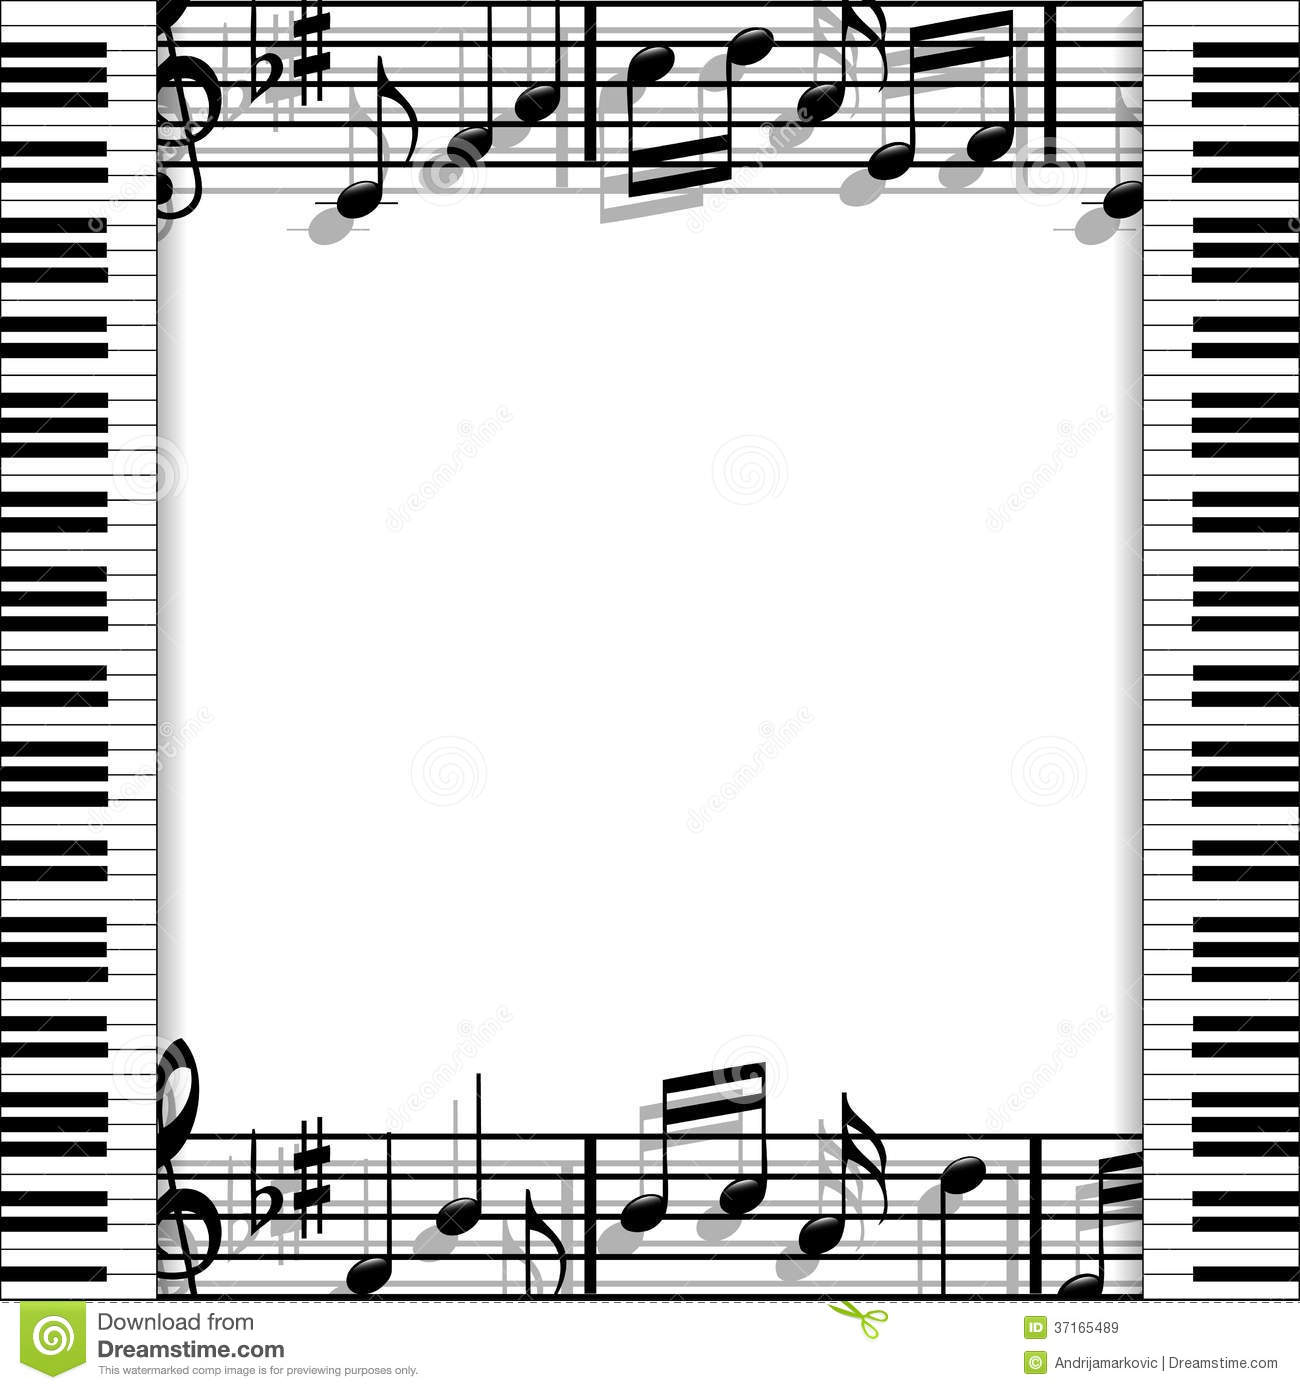 musical frame - Music Picture Frame